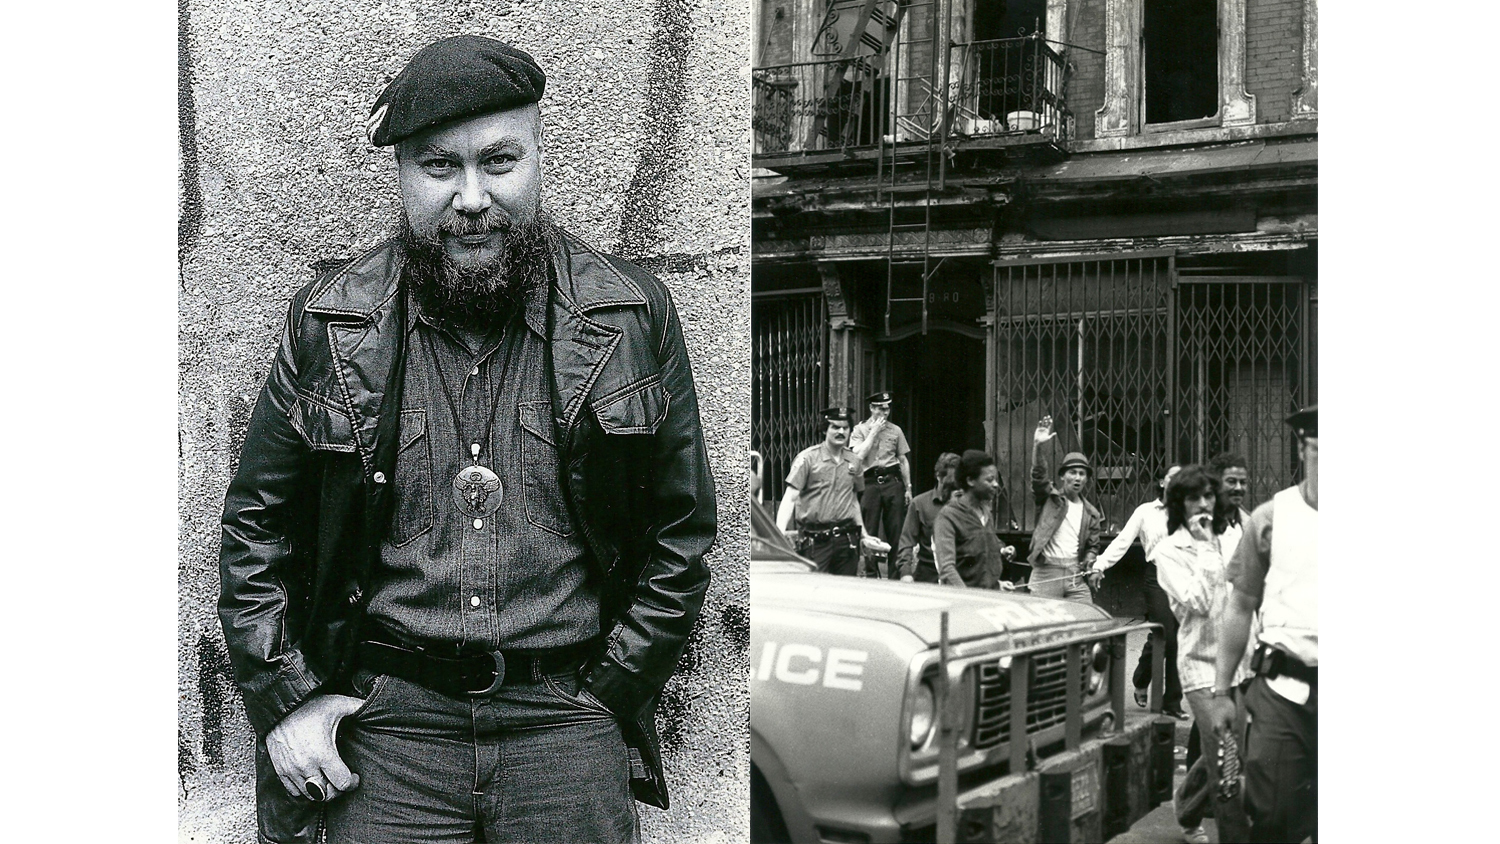 L: Artist Named Yuri, Avenue A, 1980. R: Ninth Precinct police round up drug suspects on East Fifth Street, Circa 1980